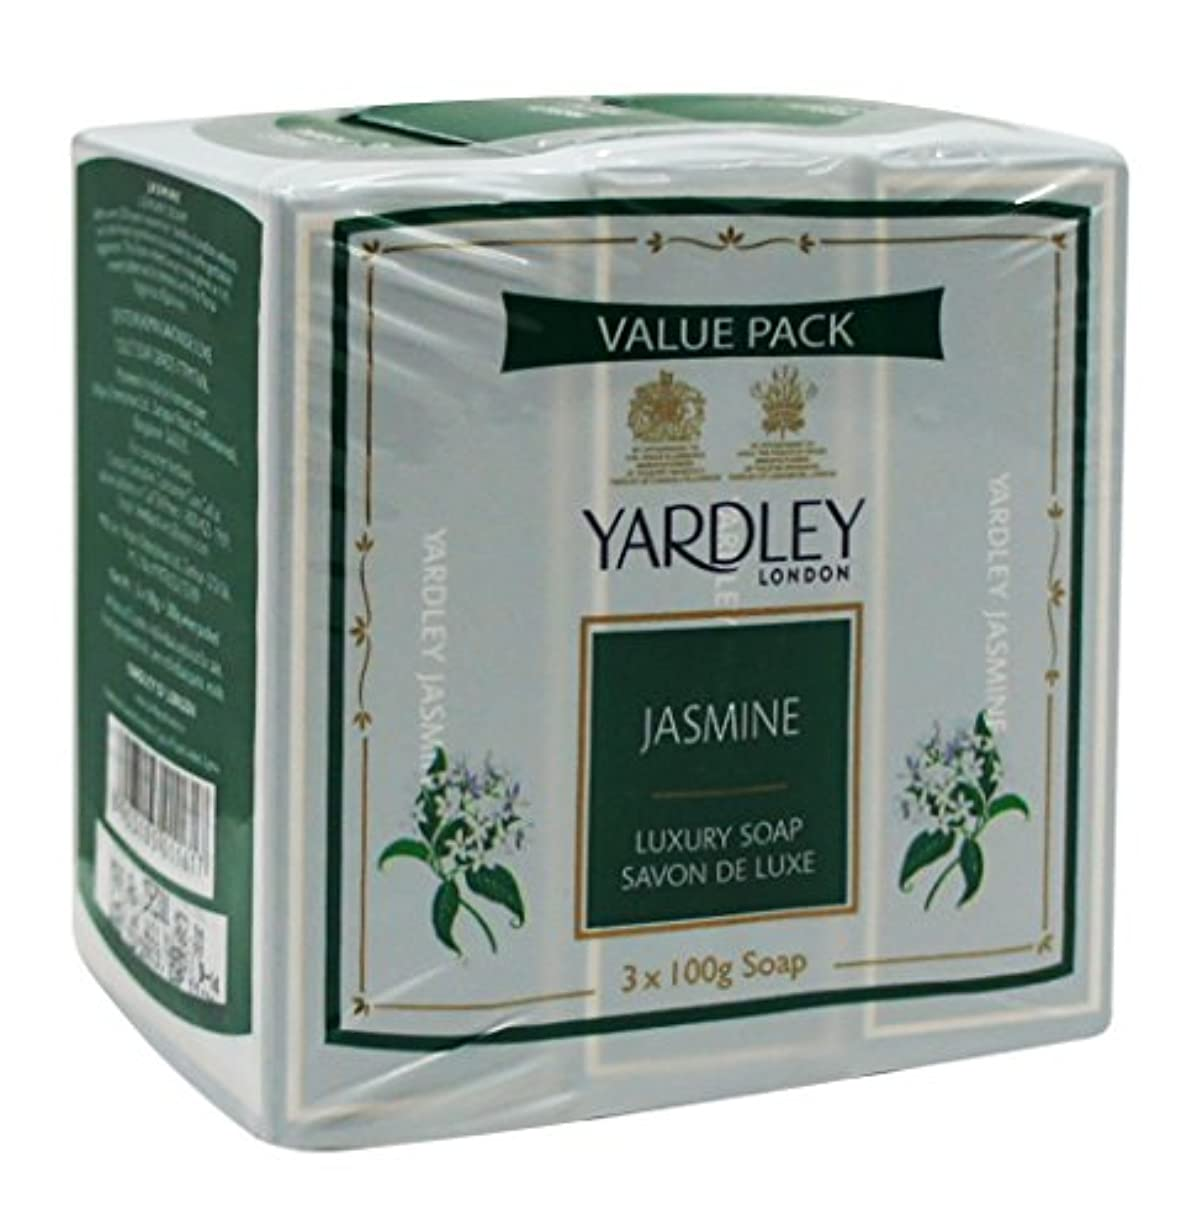 おなかがすいた基本的な柱Yardley London Value Pack Luxury Soap 3x100g Jasmine by Yardley